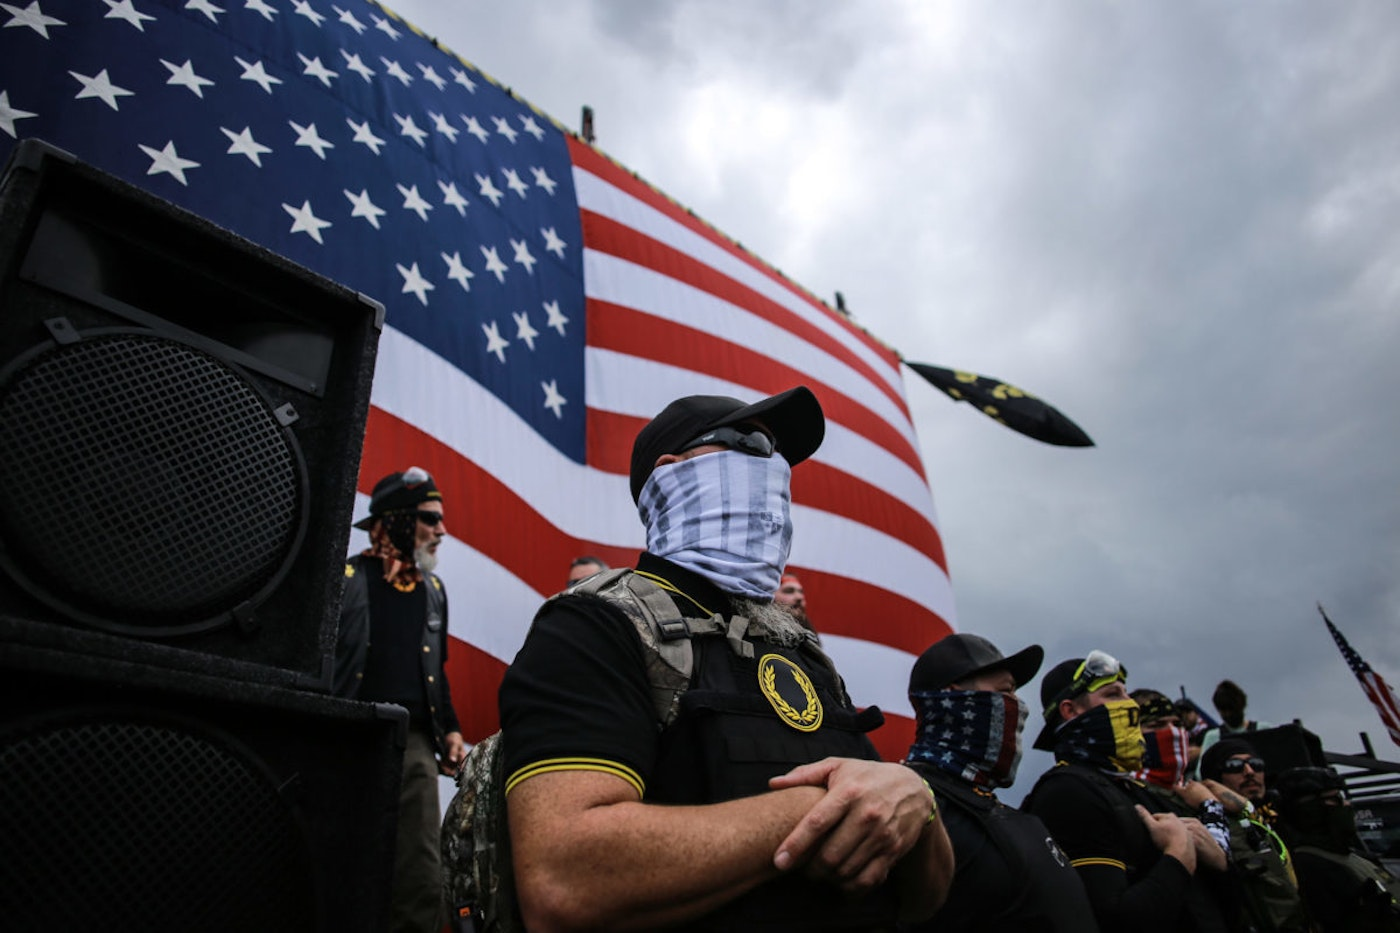 A Proud Boys rally in Portland, Oregon. Photo by Stanton Sharpe/SOPA Images/LightRocket via Getty Images